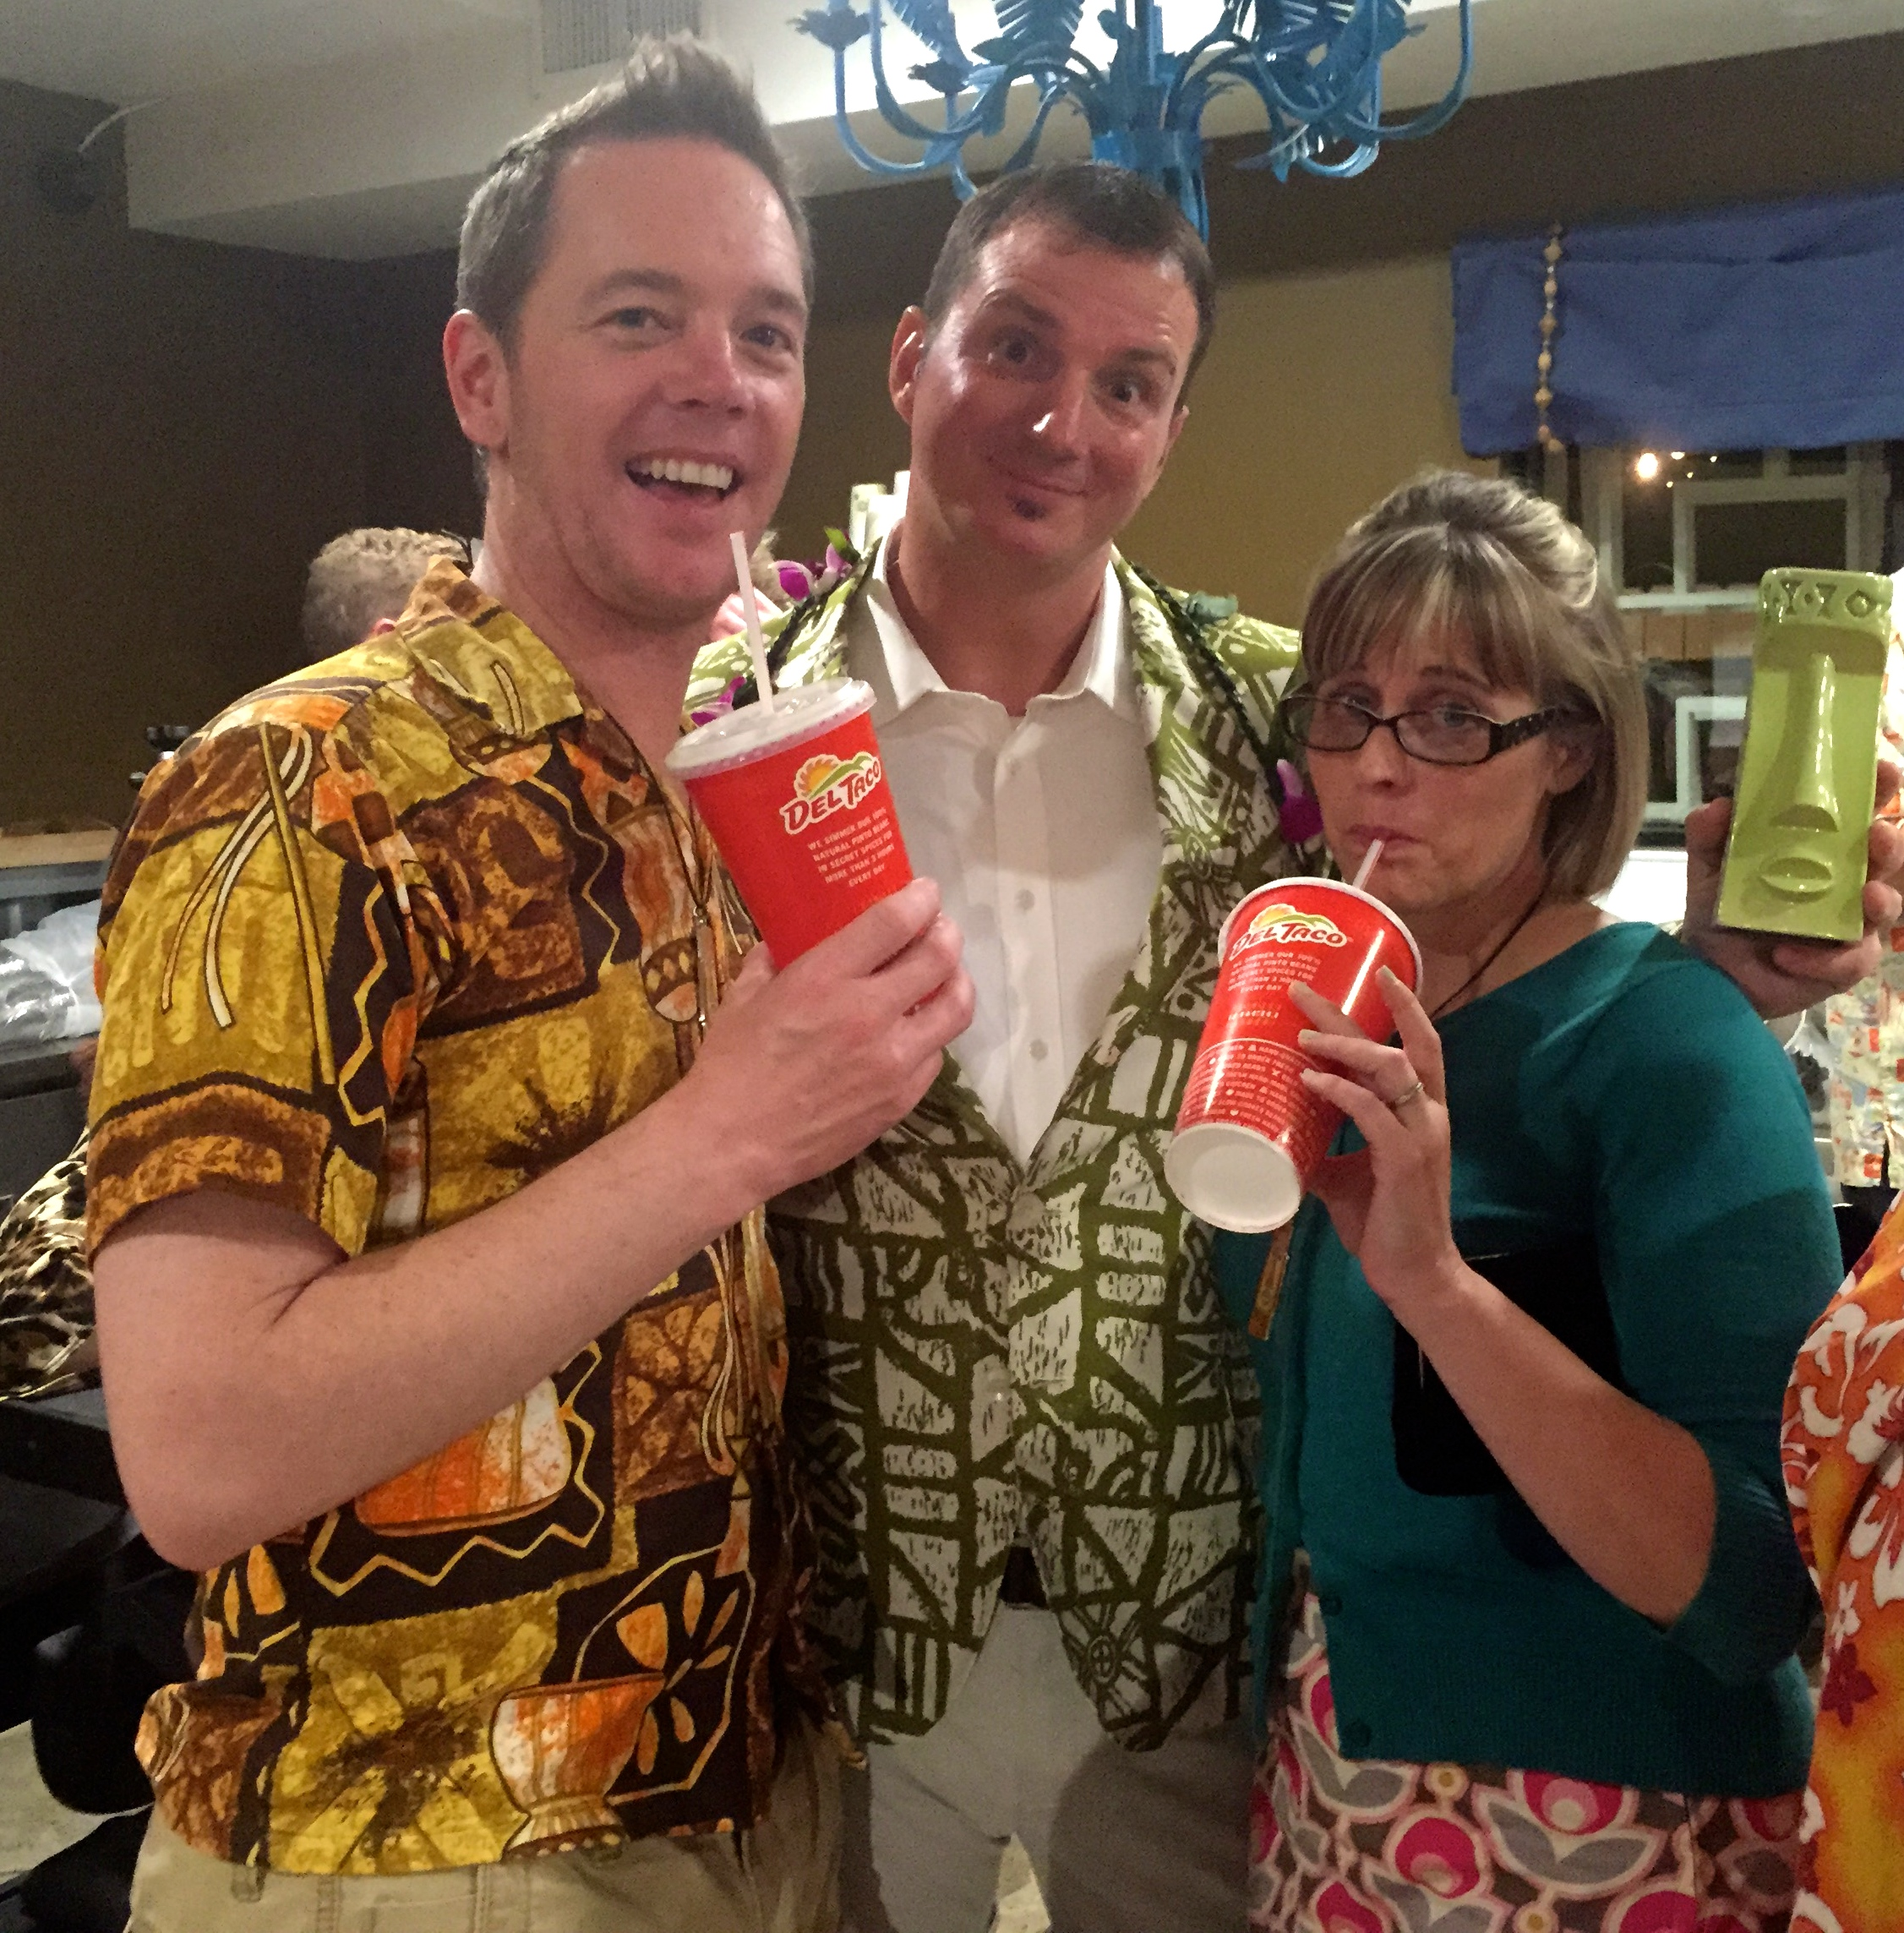 Sunshine, Rory Snyder and Starshine pose with our classy Del Taco beverages.  You can't go wrong with Del Taco for after drinking snacks and hydration.